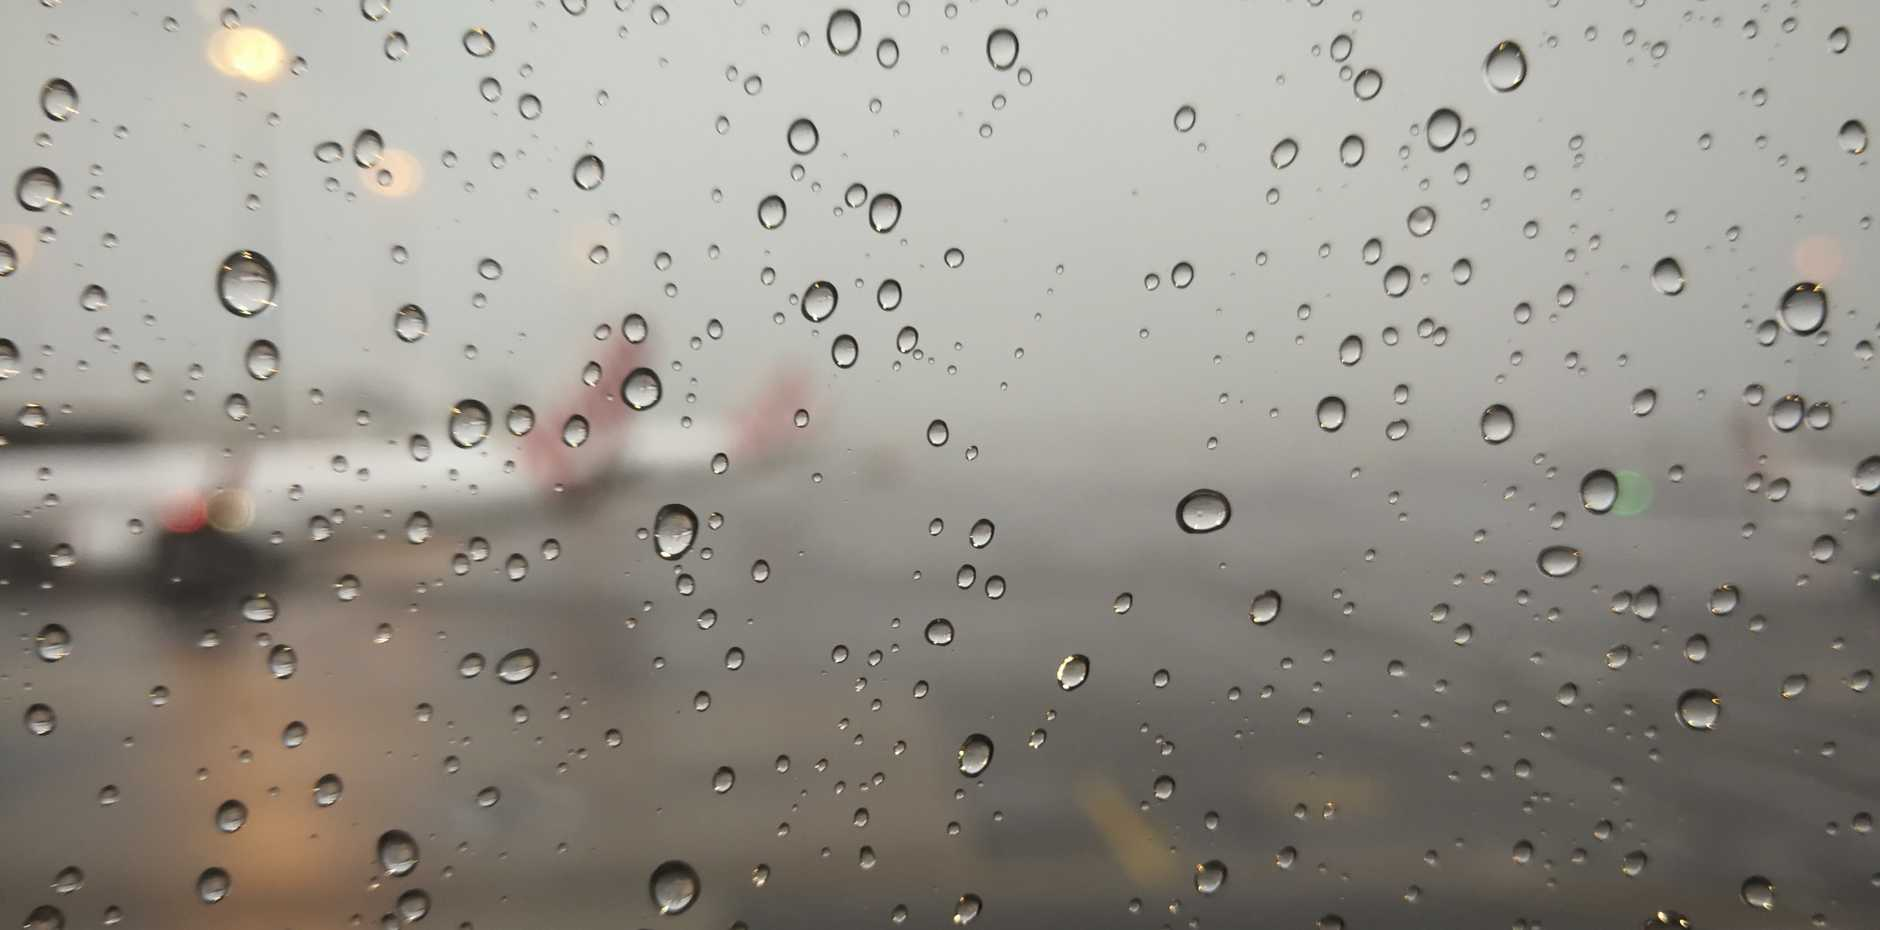 The outlook at Kingsford Smith Airport. Photo: Mark Furler.